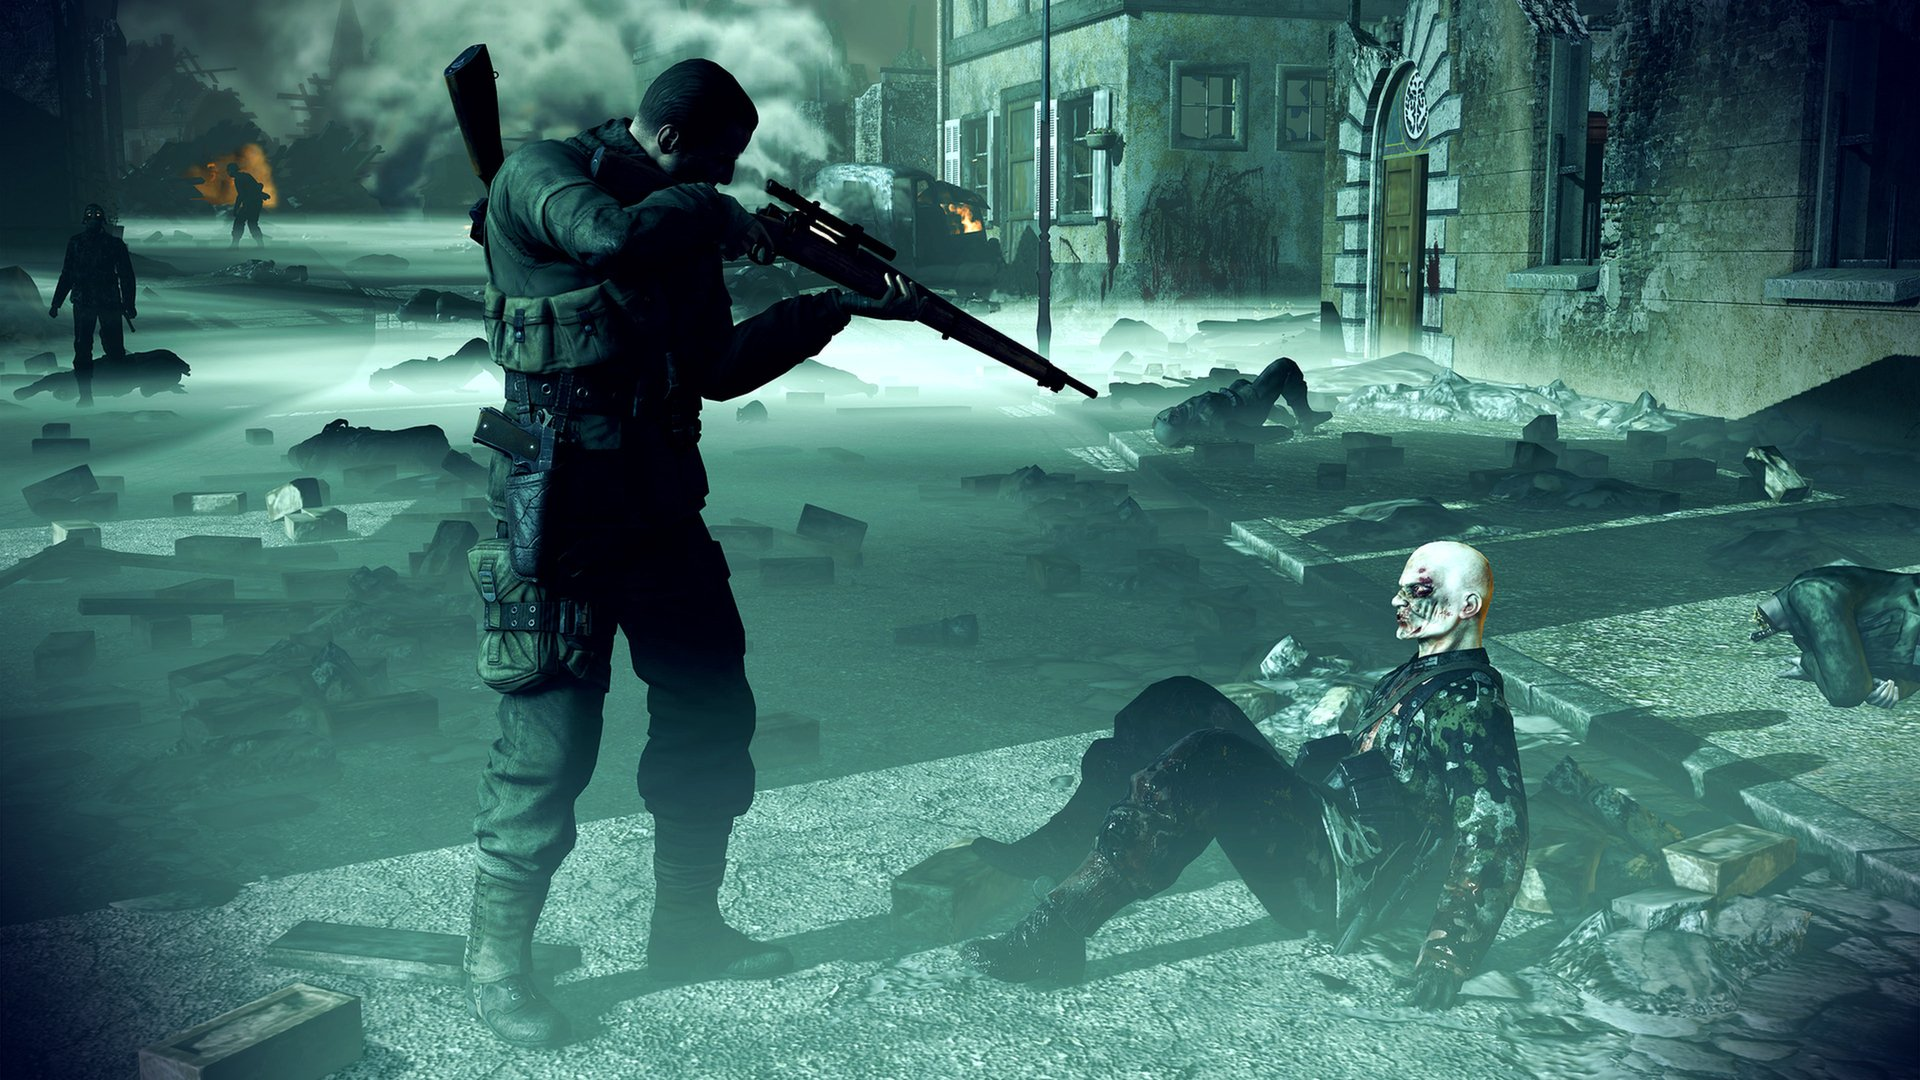 12 Sniper Elite Nazi Zombie Army HD Wallpapers Background 1920x1080